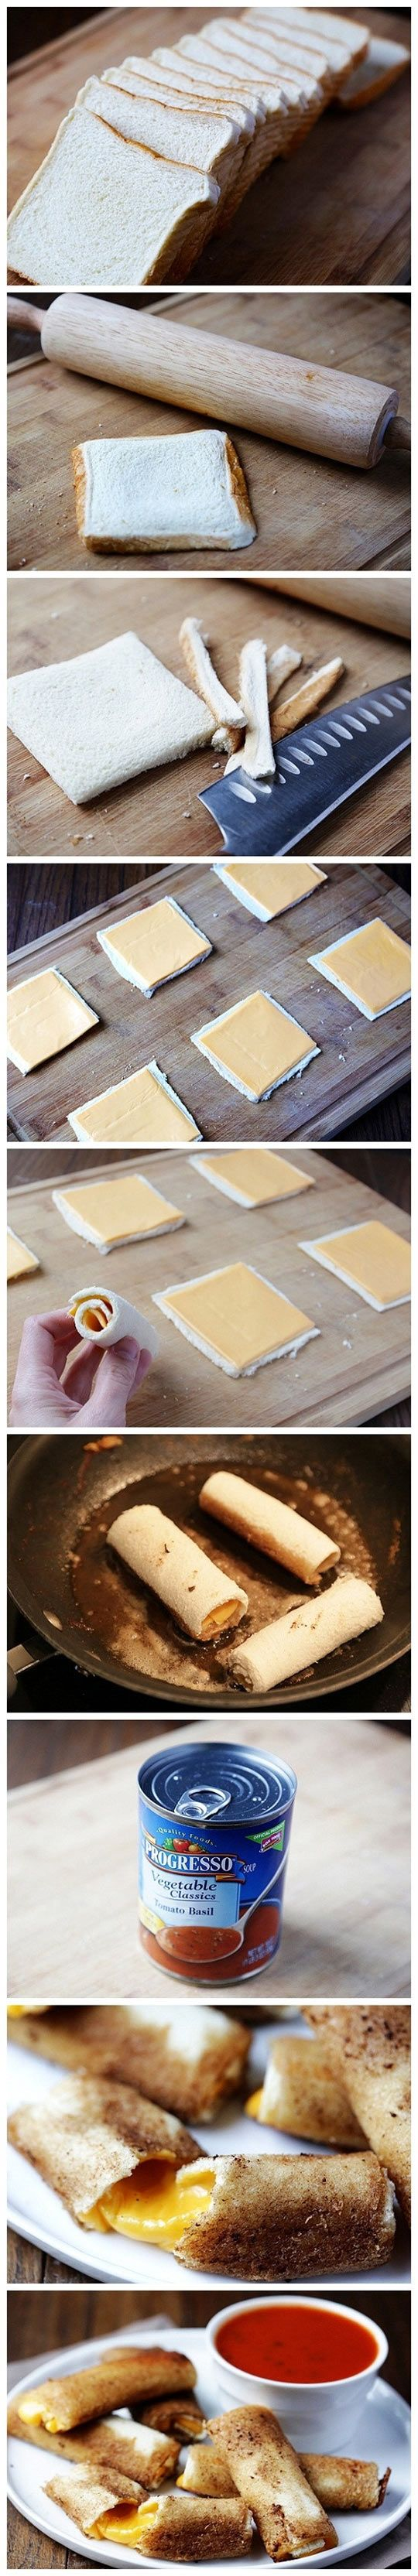 Grilled cheese sticks for dipping in soup!